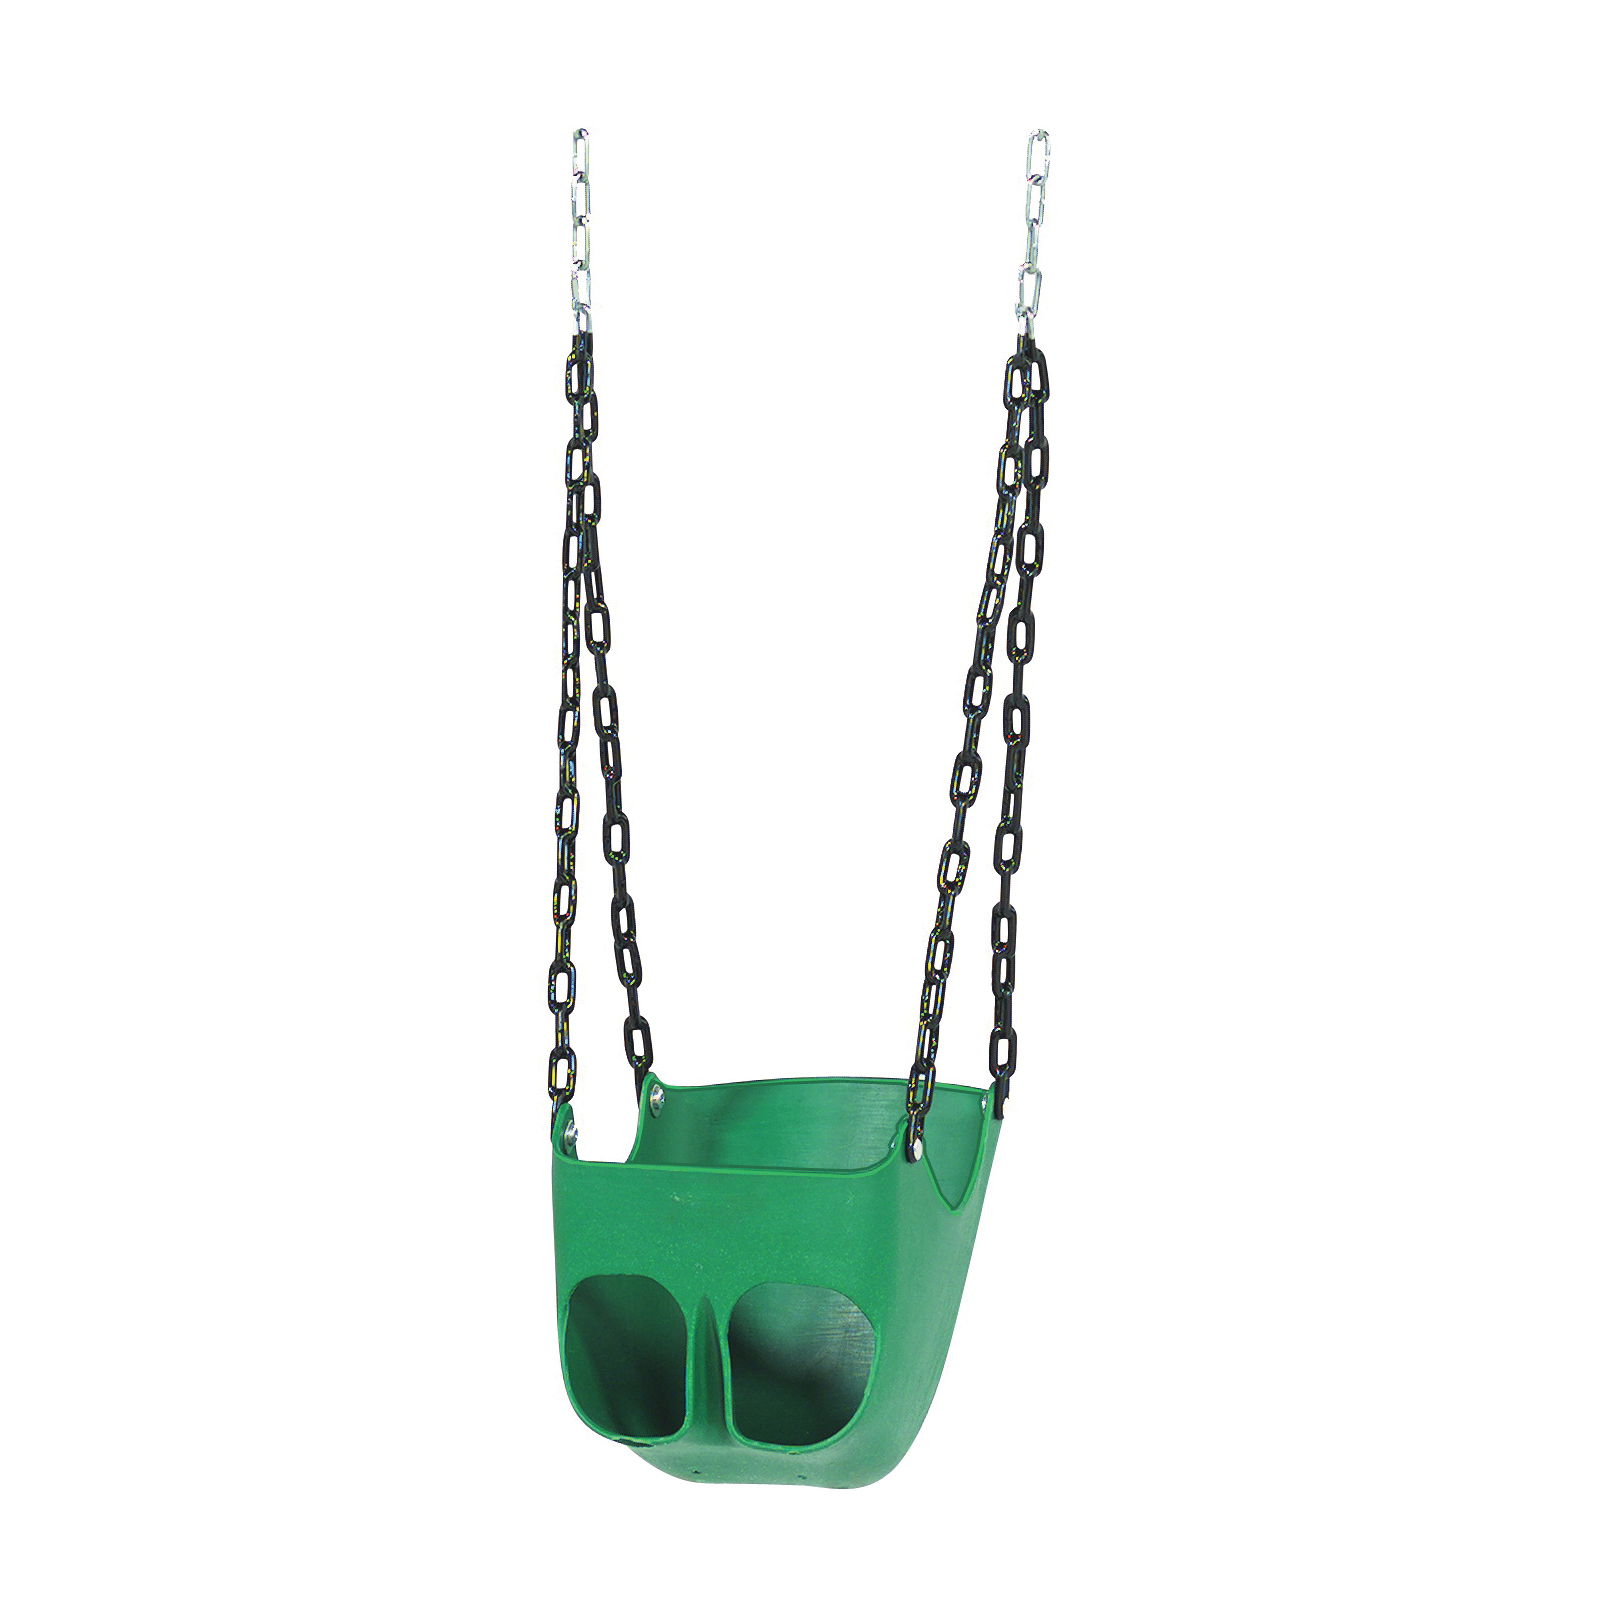 Picture of PLAYSTAR PS 7534 Toddler Swing, Metal Chain/Rope